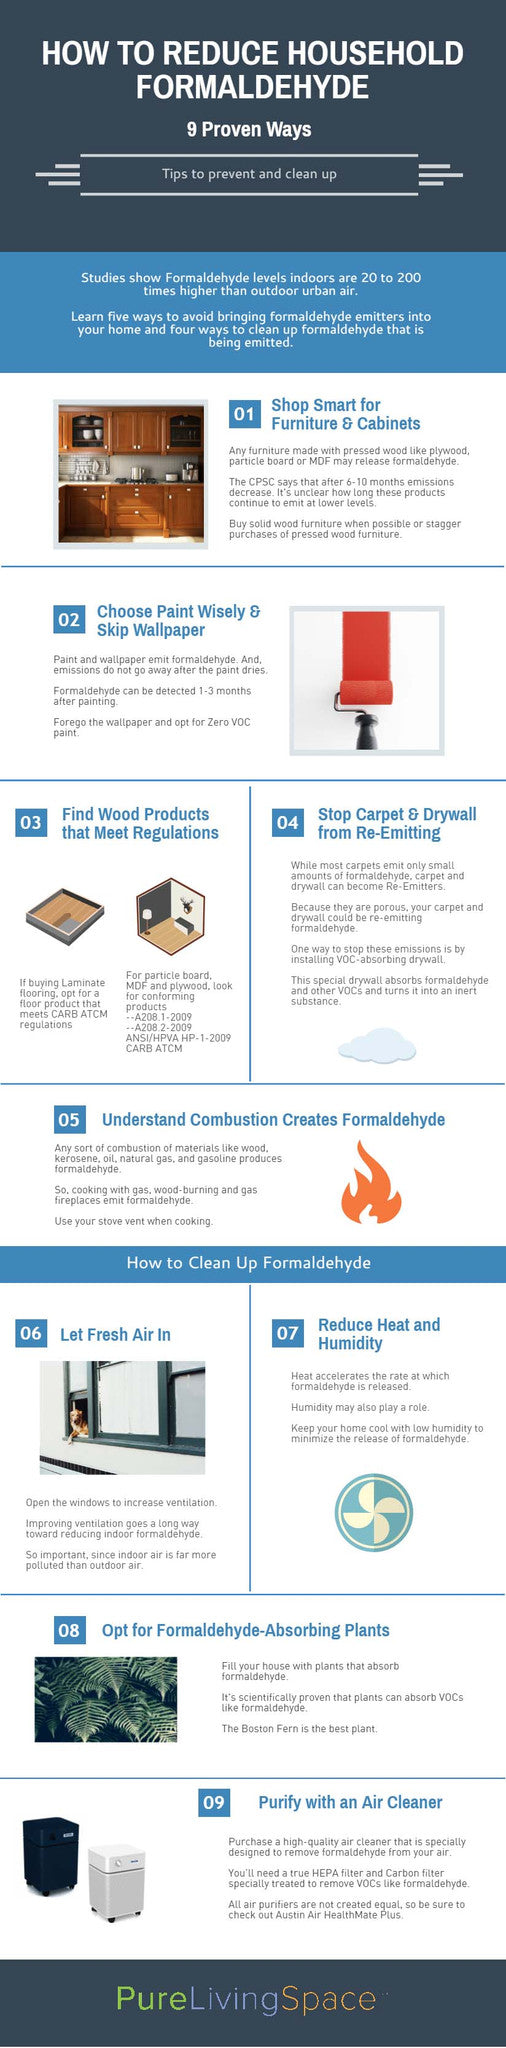 Killer infographic on ways to reduce household formaldehyde. Please pin.